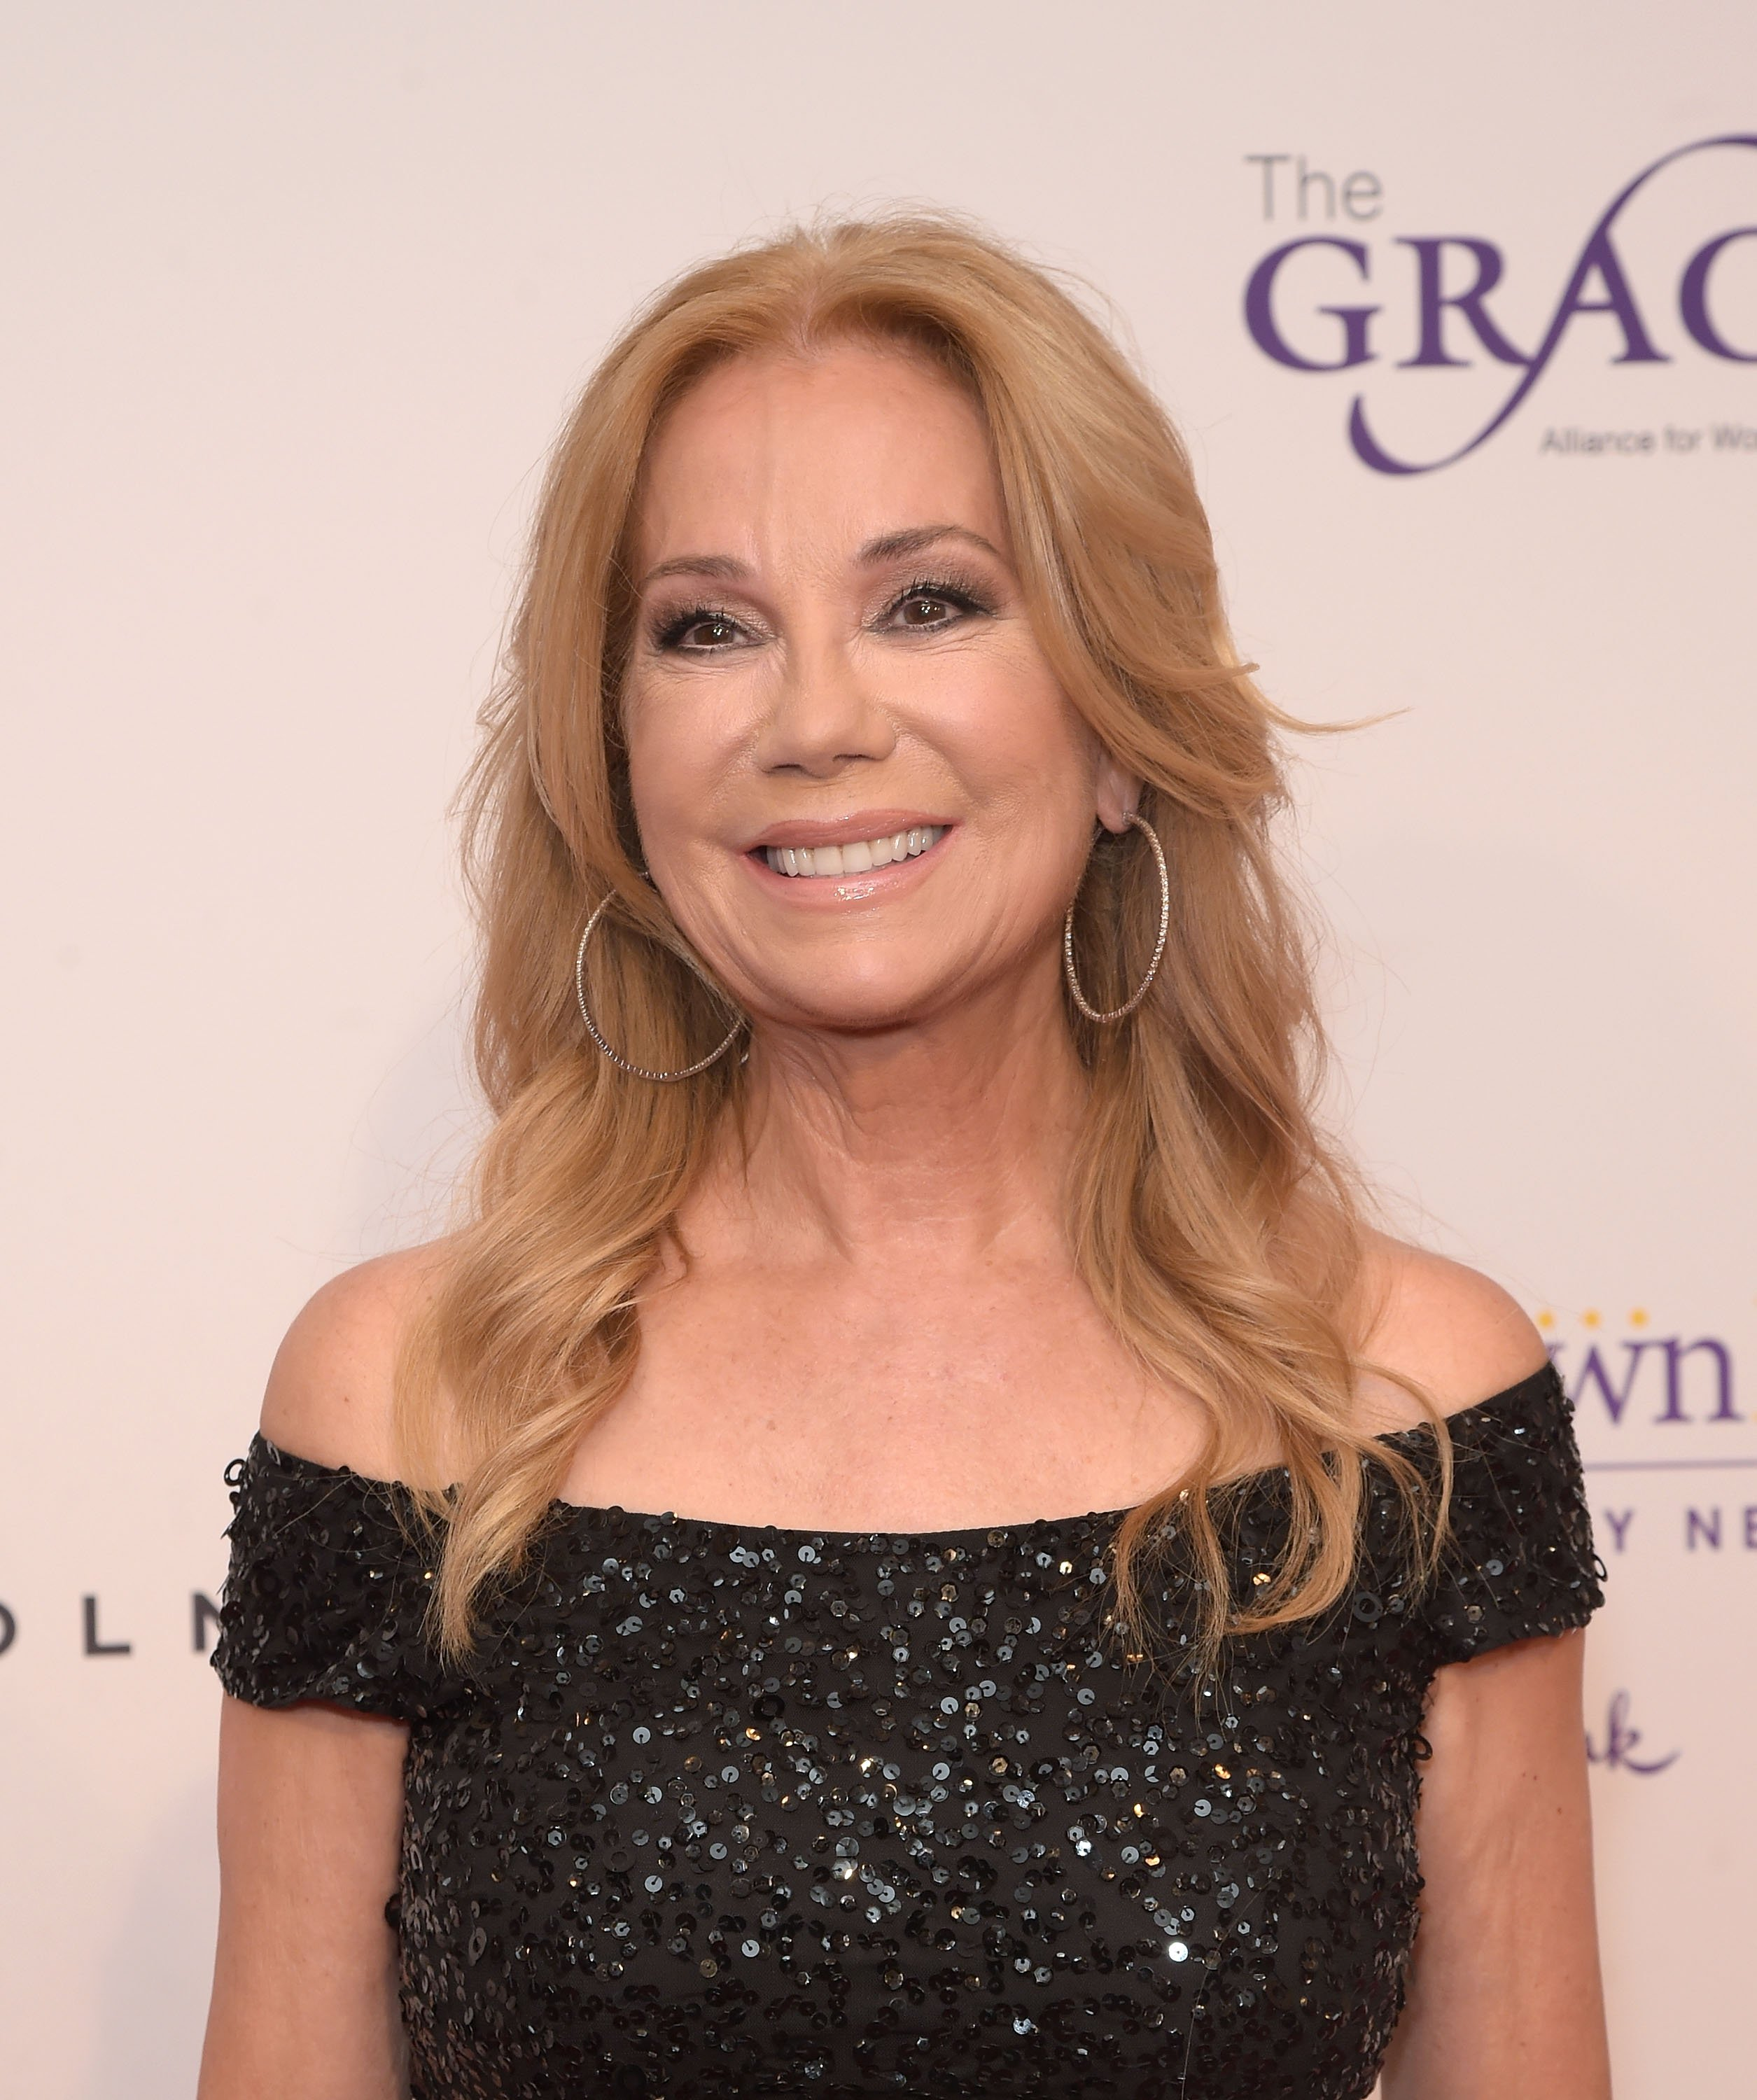 Kathie Lee Gifford pictured at the 41st Annual Gracie Awards Gala, 2016, Beverly Hill, California. | Photo: Getty Images